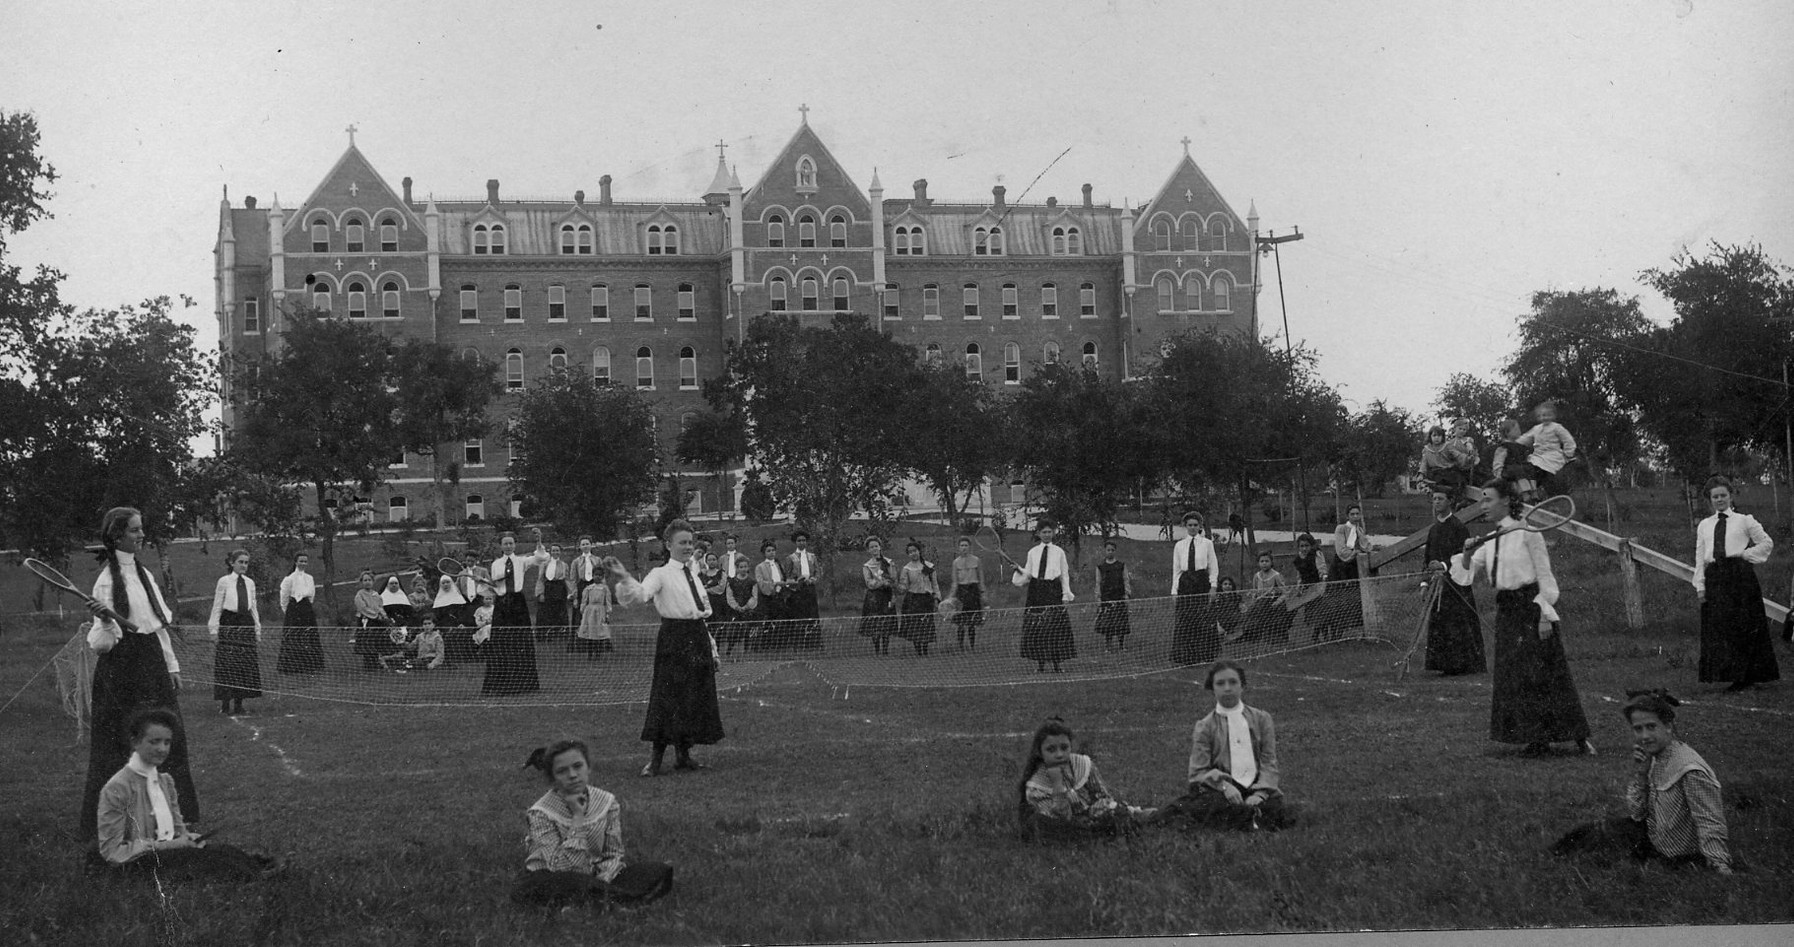 In 1909, Mother Mary John O'Shaughnessy proposed that Incarnate Word Academy be expanded to the college level, as women were not accepted at the colleges and universities conducted by men for men. College classes began in 1910. Photograph taken on the lawn in front of the Motherhouse / Academy.